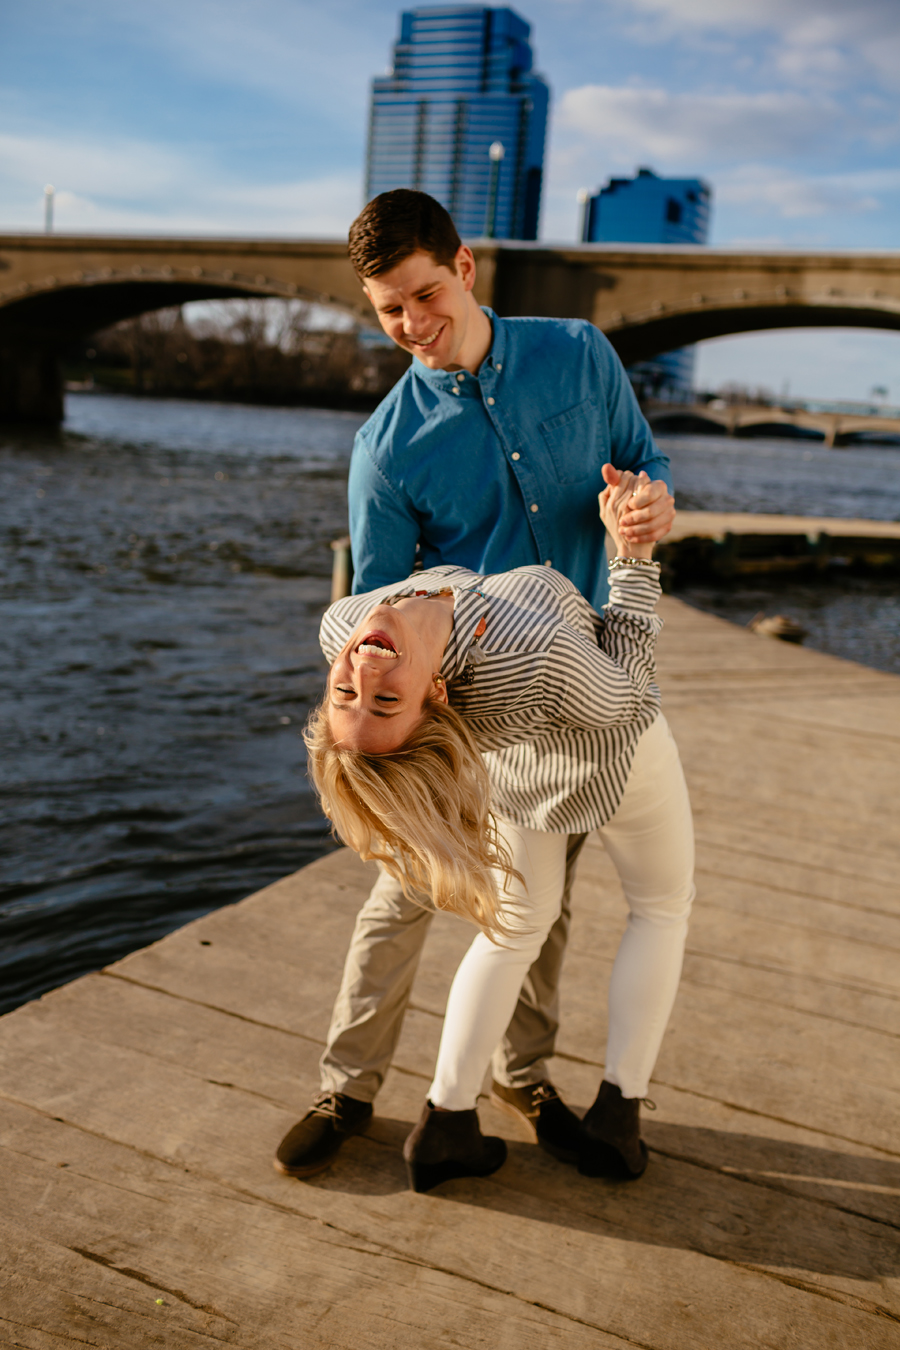 engagement-photography-downtown-grand-rapids45.jpg